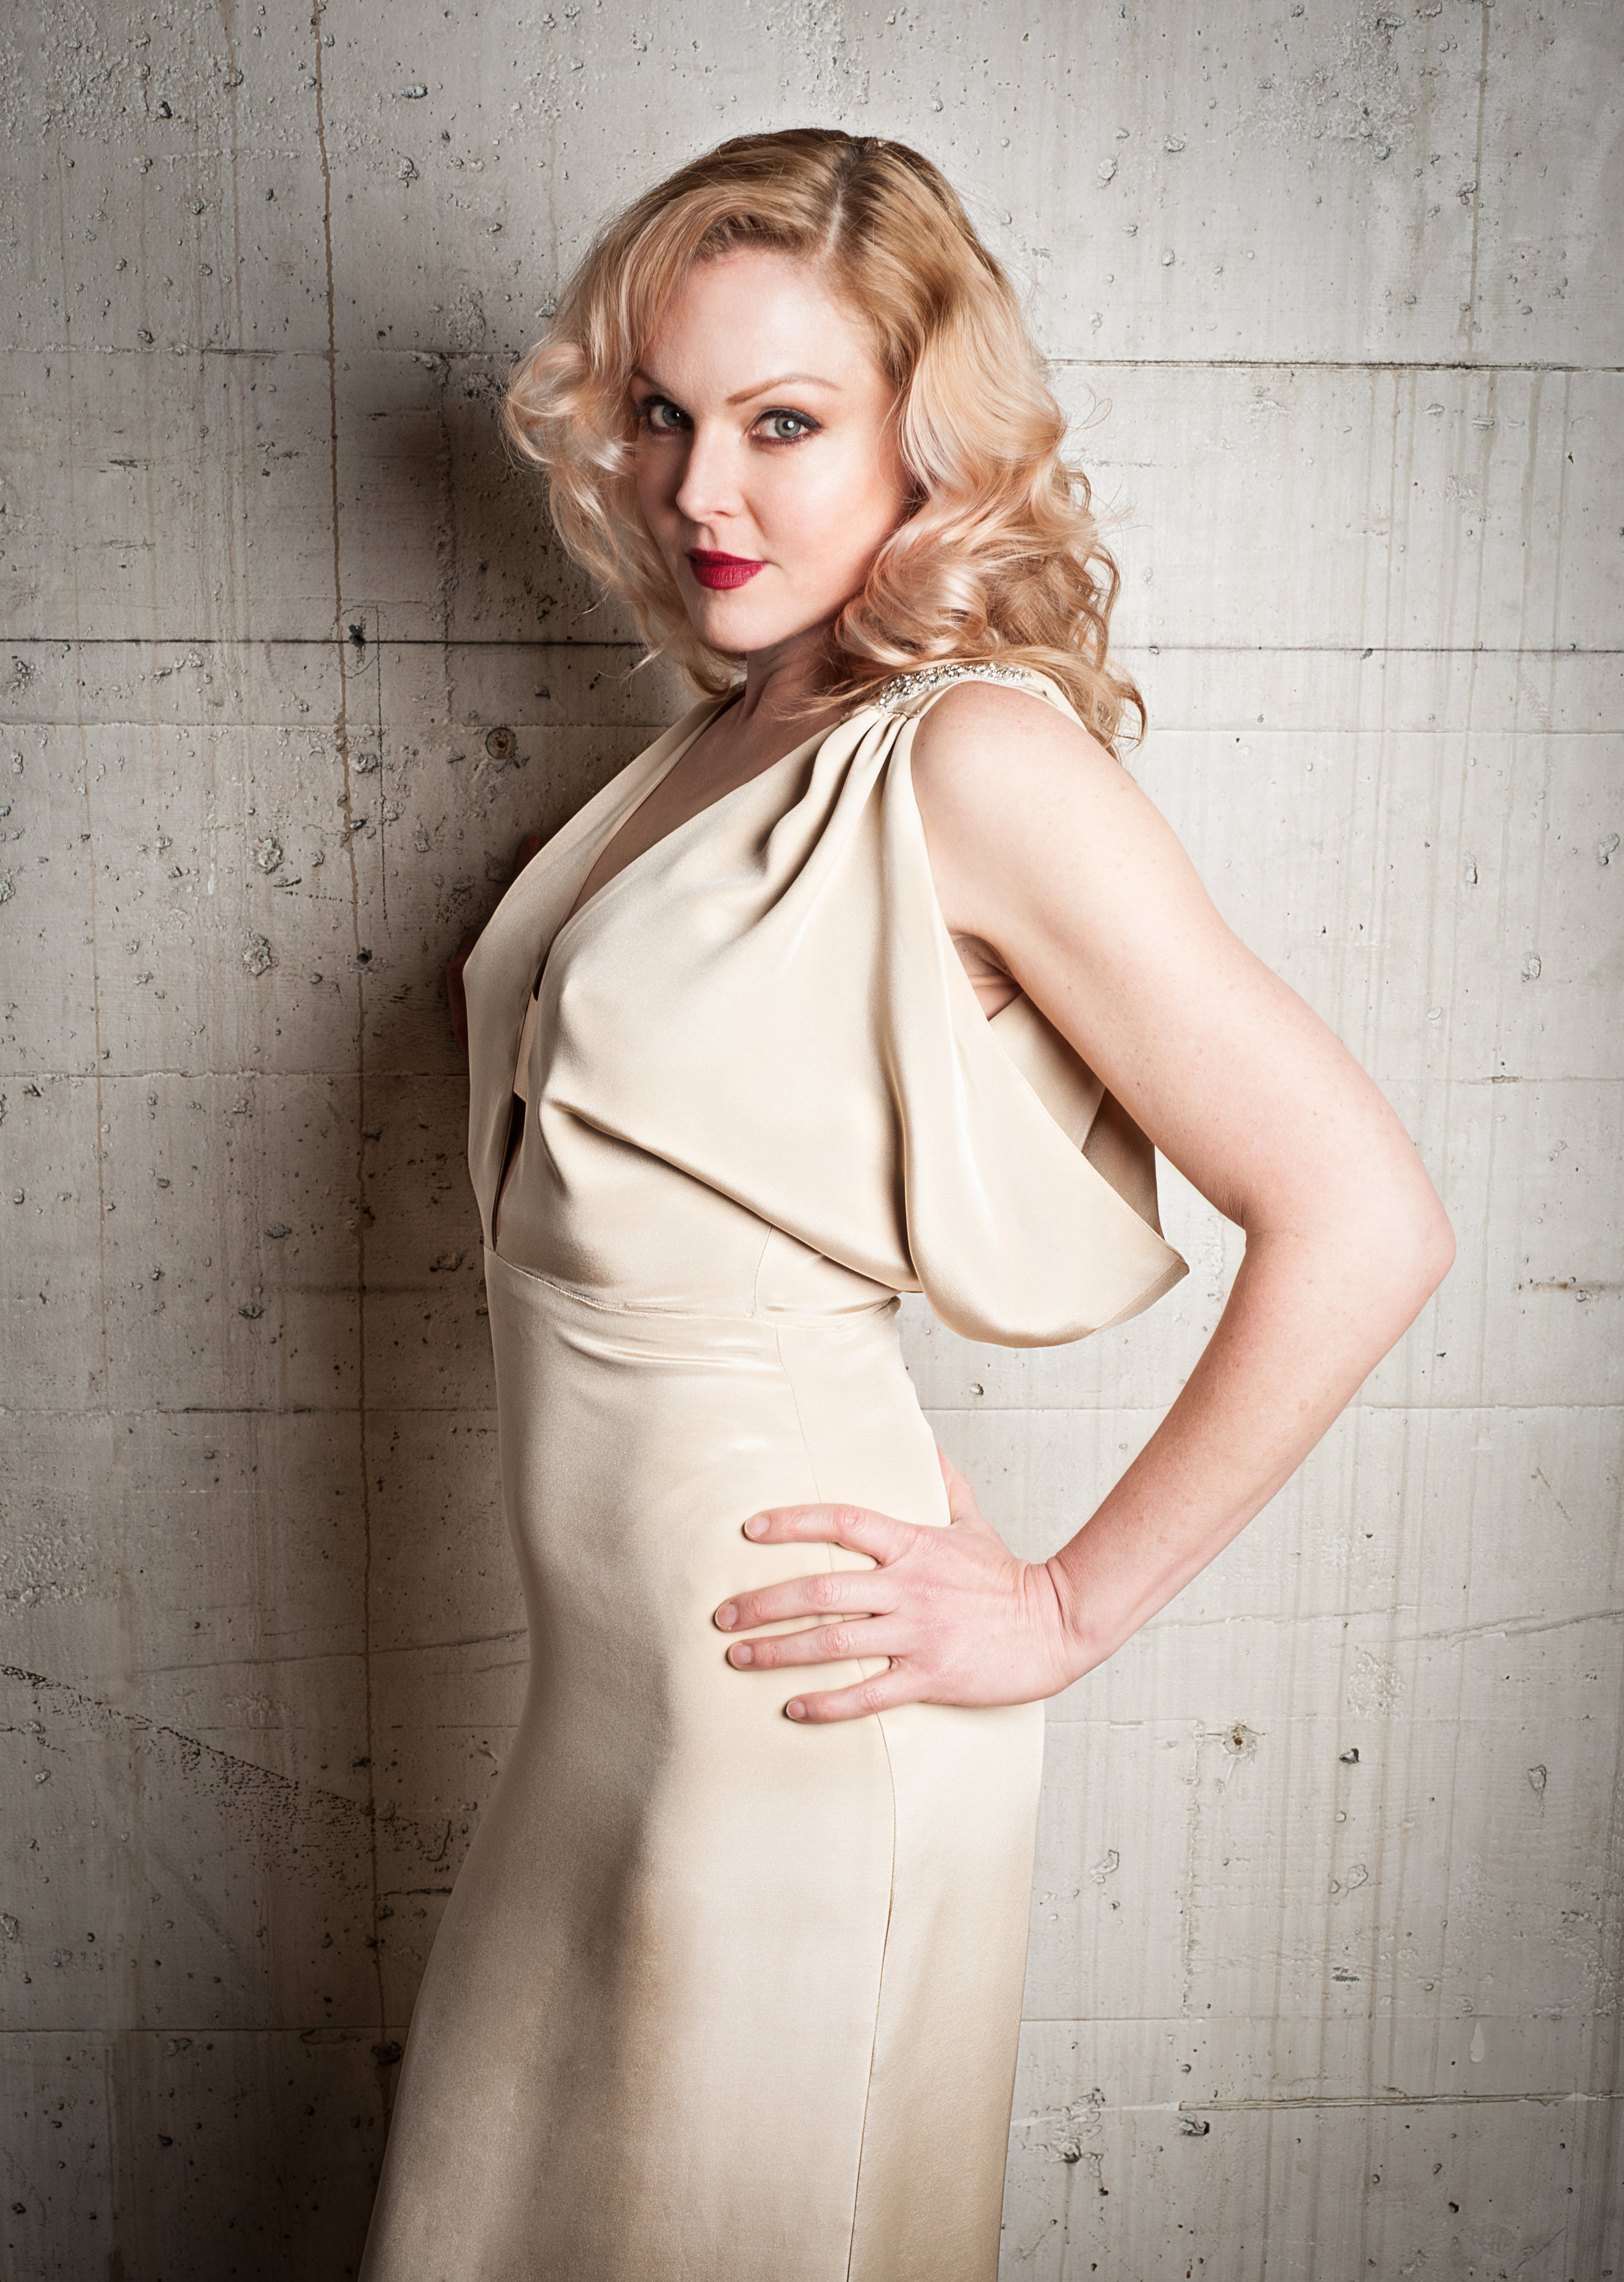 Storm Large with Le Bonheur, 5/4/17 at South Orange Performing Arts Center, 8PM